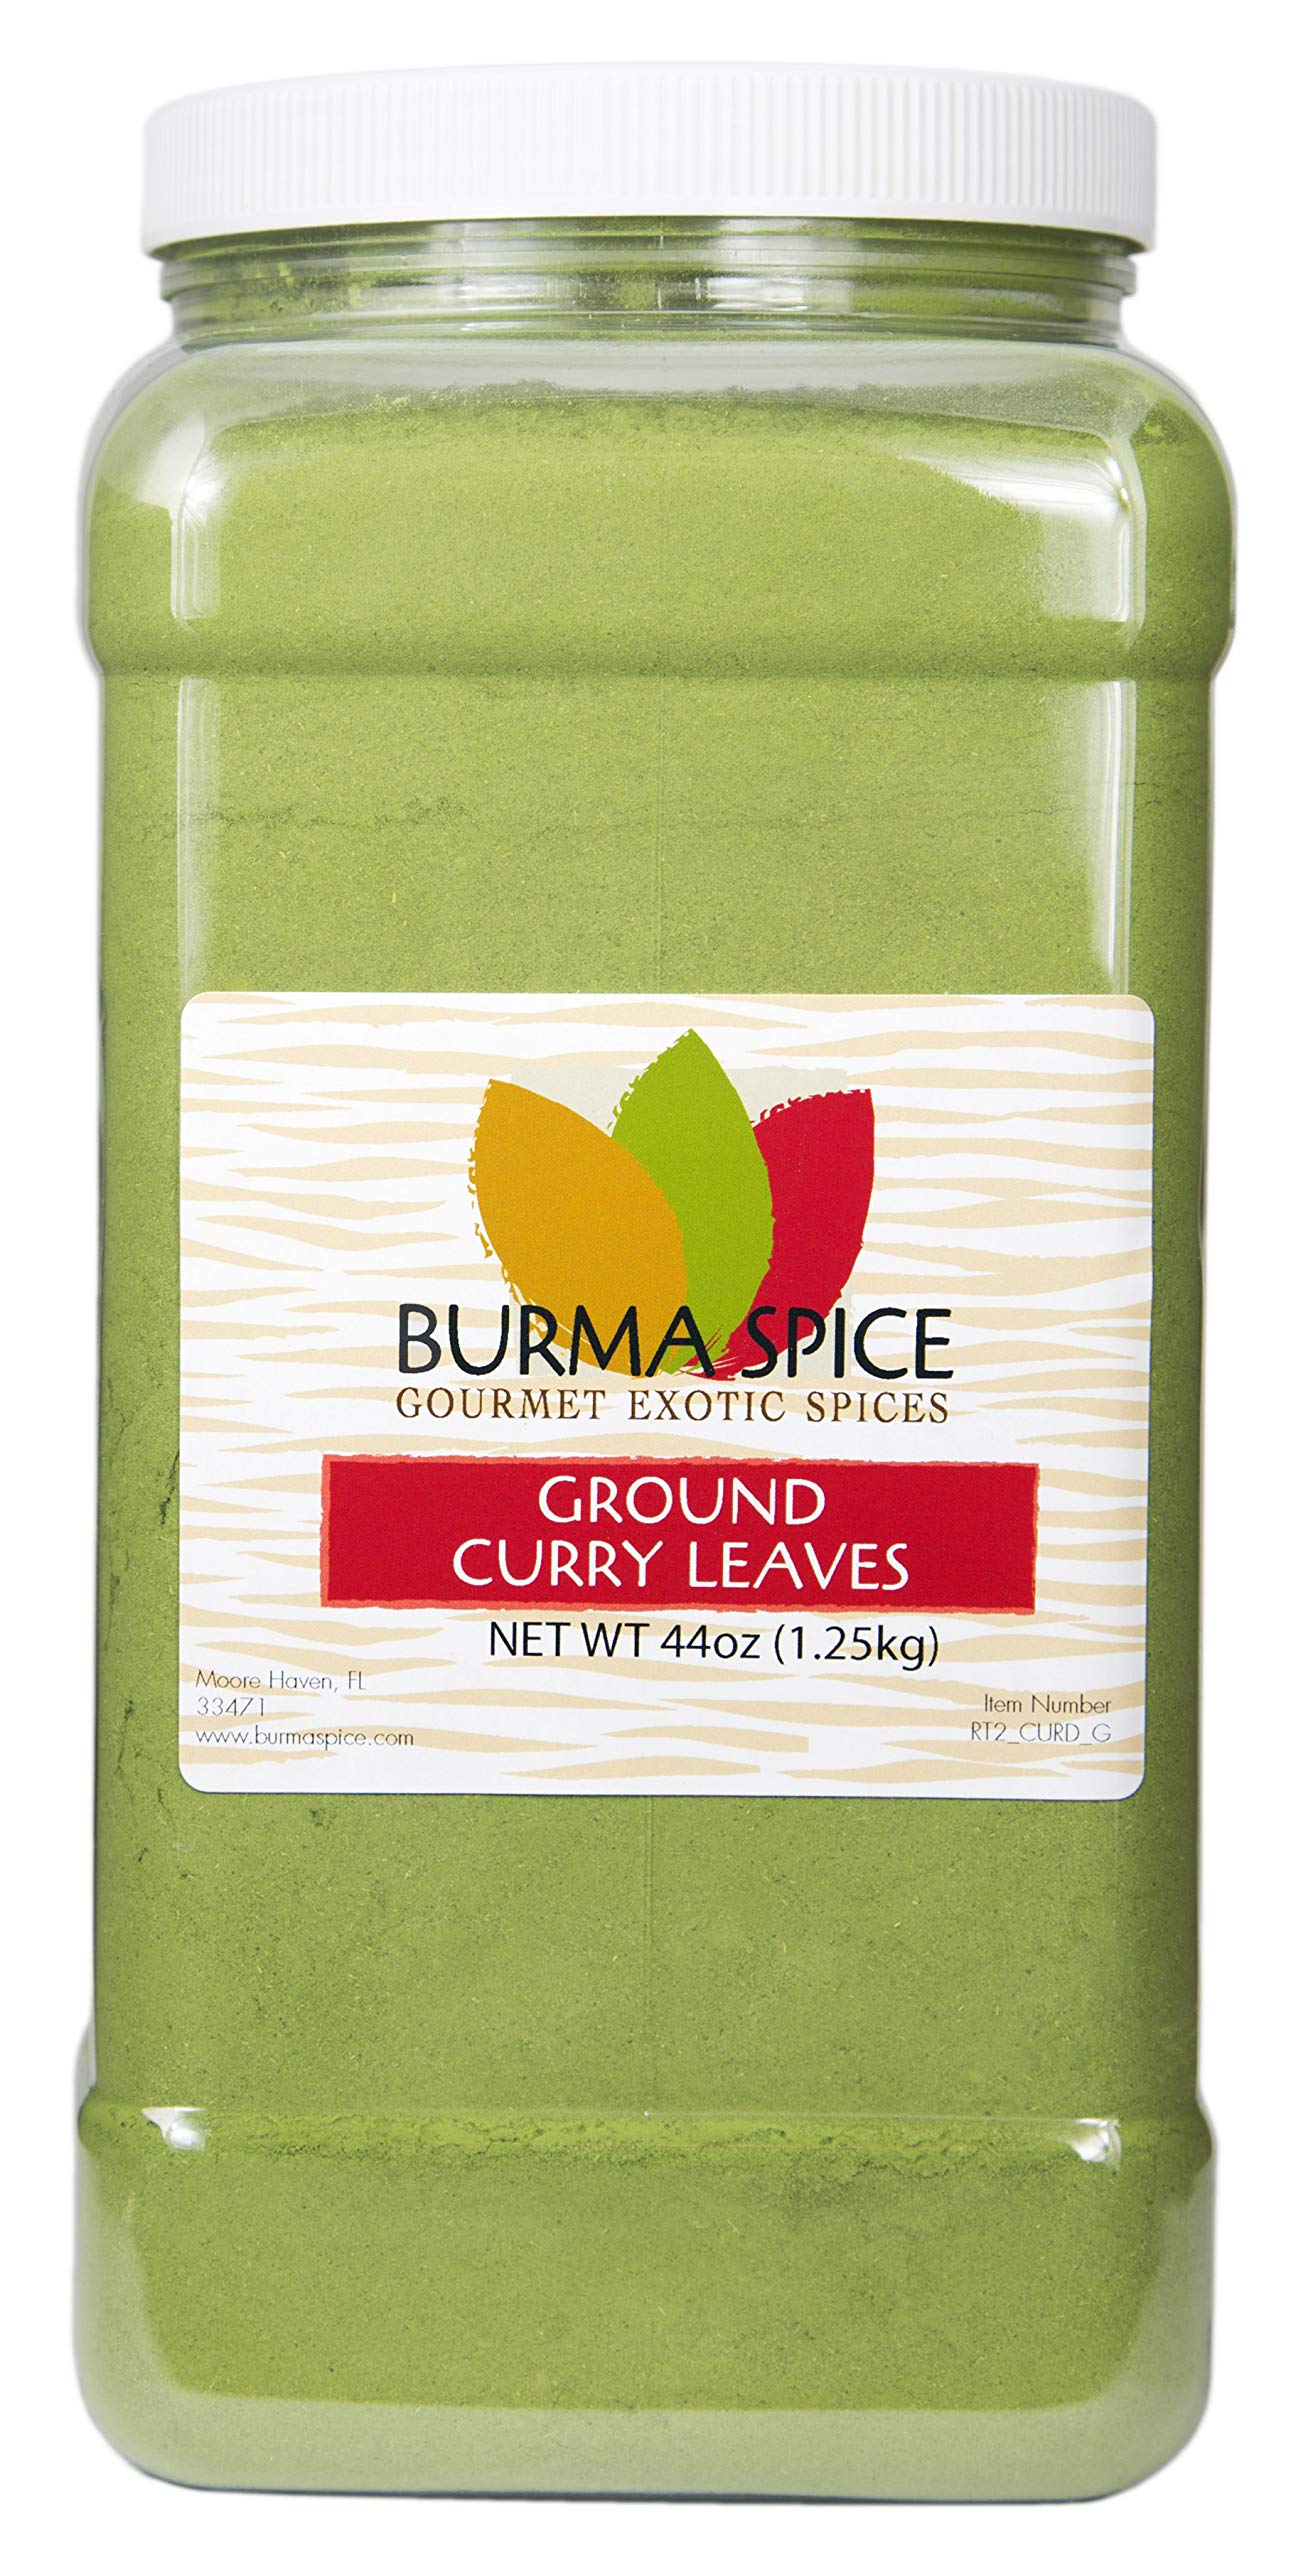 Ground Curry Leaves, Powder : Indian spice also used in Ayurvedic medicine (44oz.) by Burma Spice (Image #1)